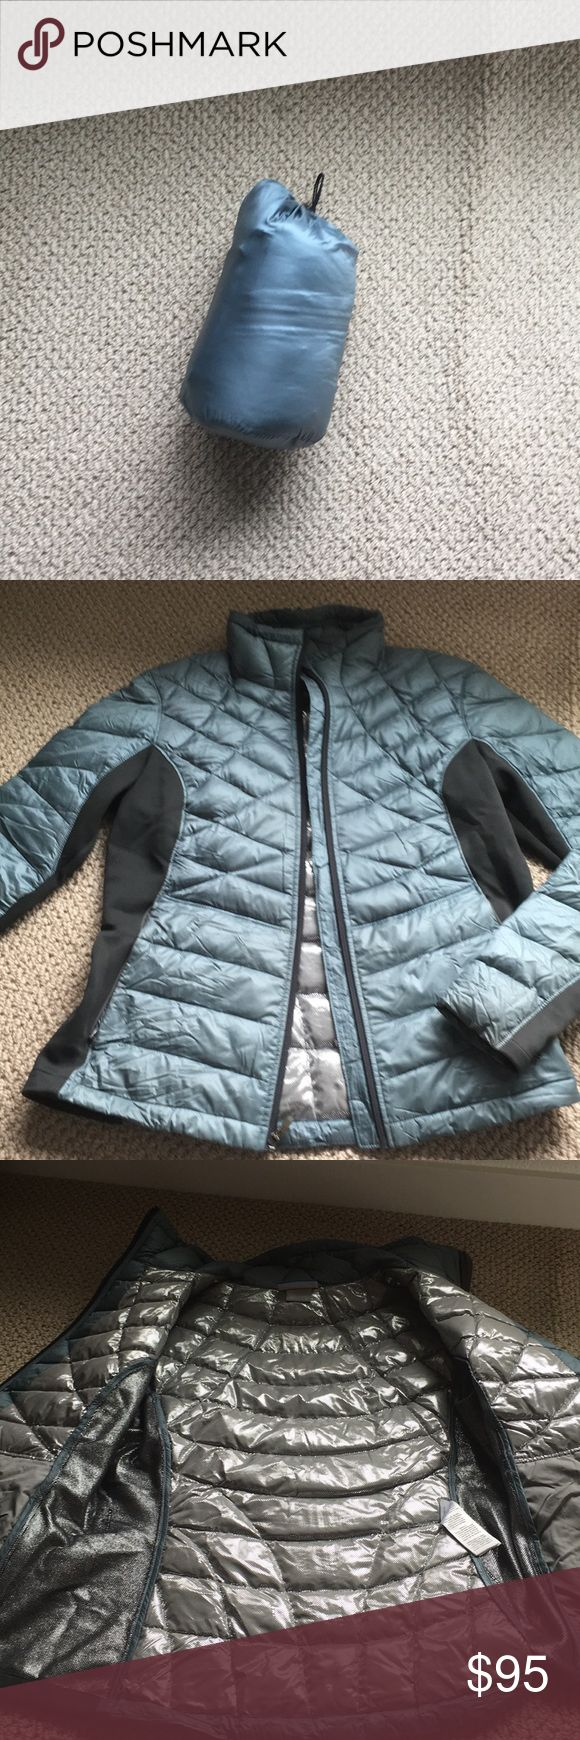 Columbia Down Jacket Like new condition. Worn a couple of times before pregnant and no longer fits. Omni heat so stays really warm. Stretchy material on sides so has a great fit. Comes with stuff sack. From a pet free and smoke free home. Columbia Jackets & Coats Puffers